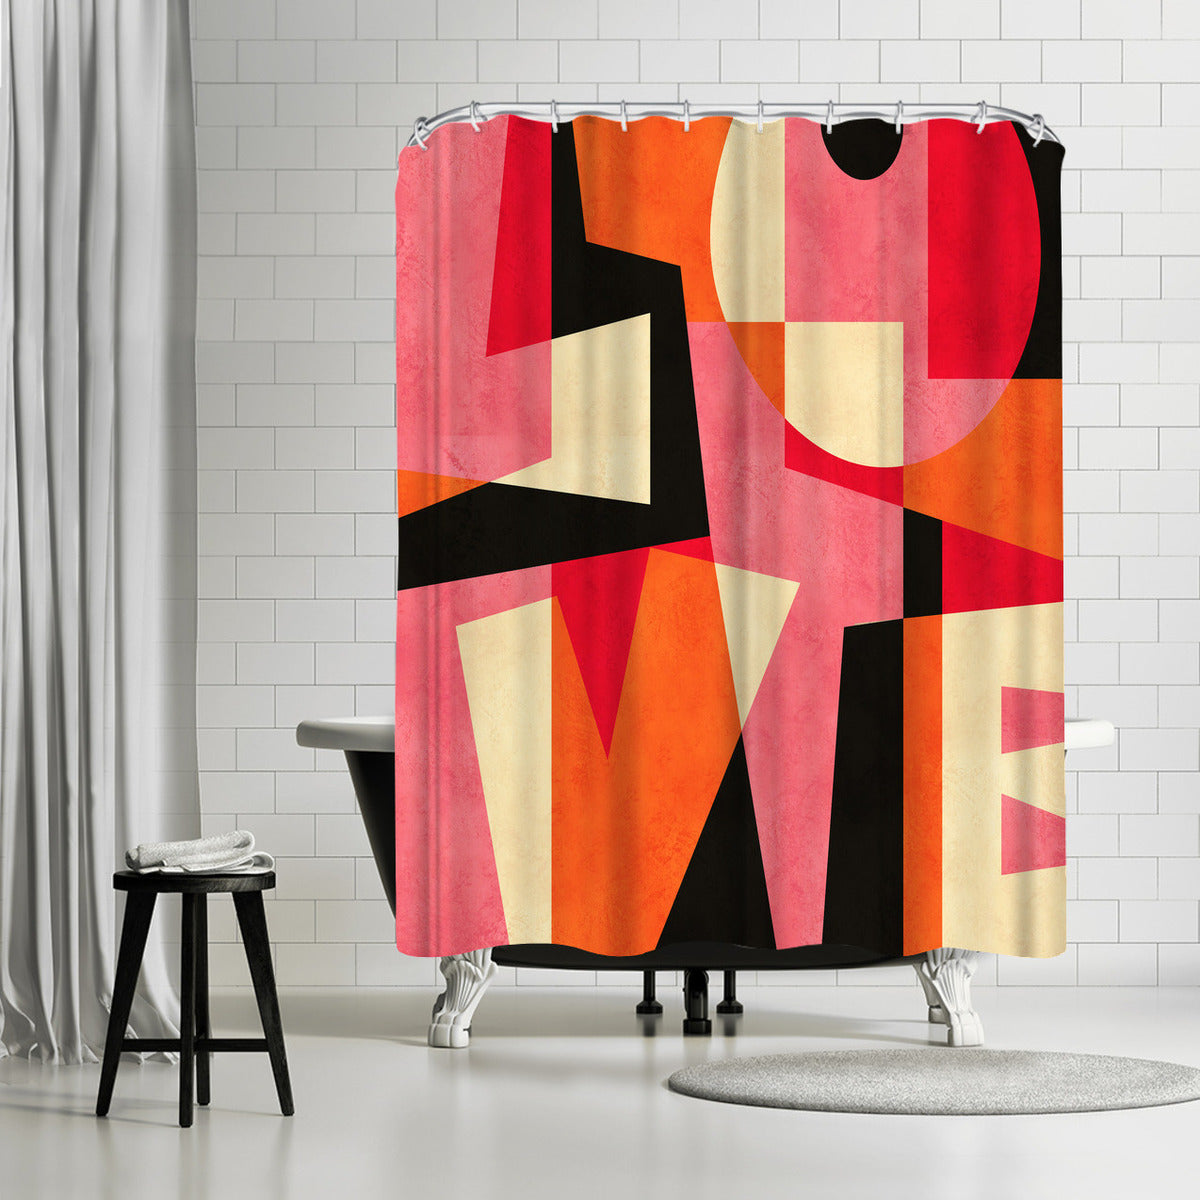 L O V E by Susana Paz Shower Curtain - Shower Curtain - Americanflat